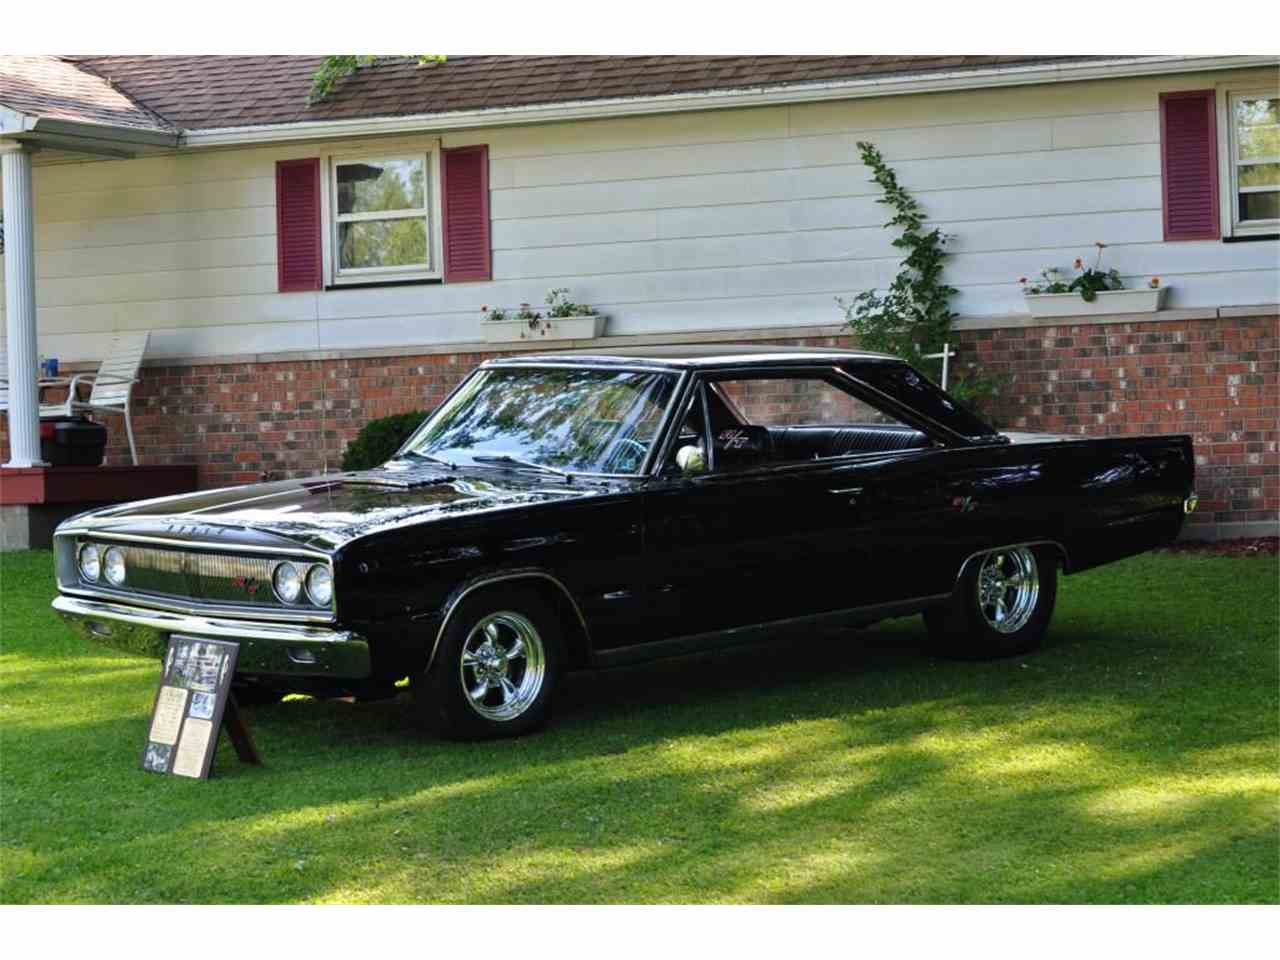 Classic Dodge Coronet For Sale On Classiccars Com Available